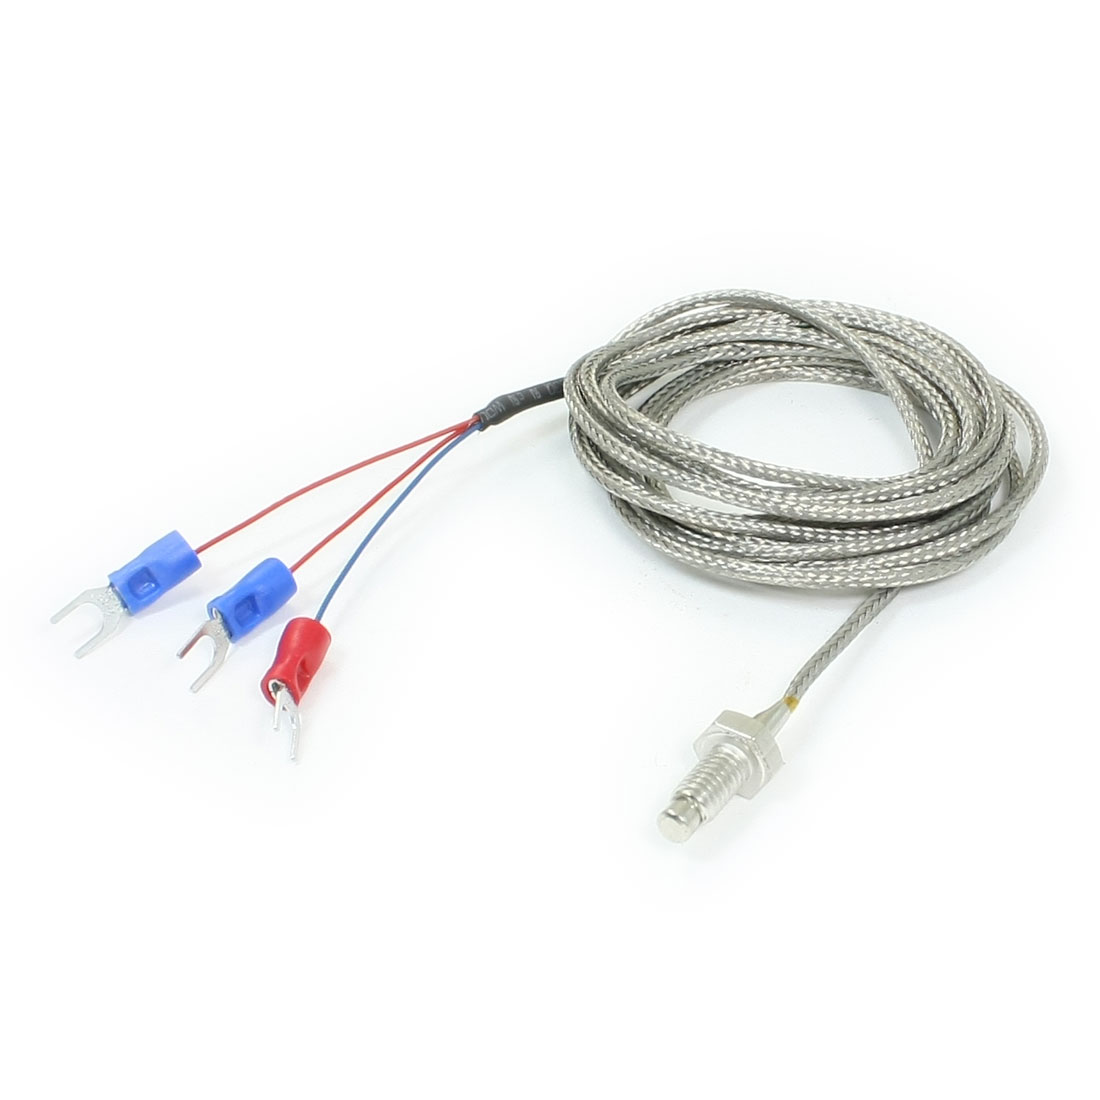 2 Meters Wire 450 Degree Temprature Sensor Thermocouple Probe PT100